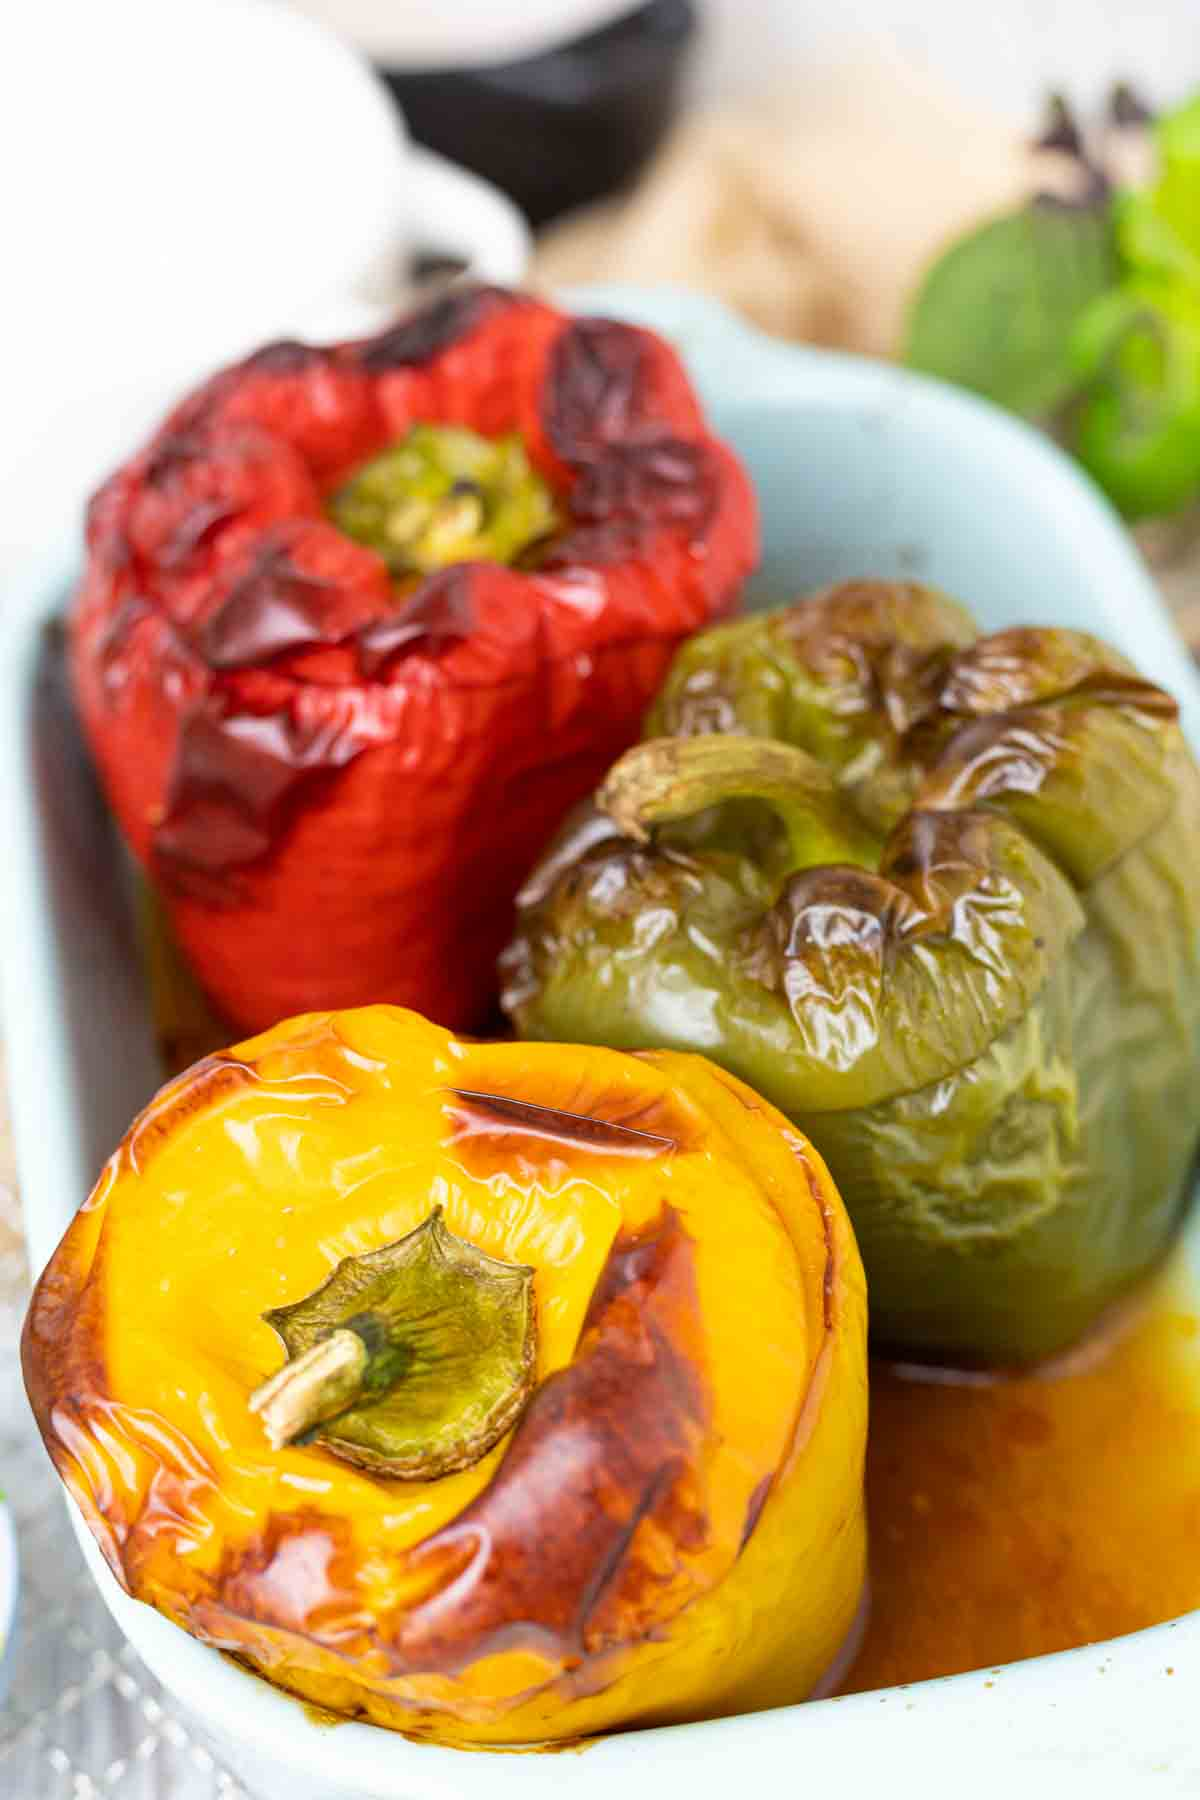 Low Carb Stuffed peppers in a baking dish